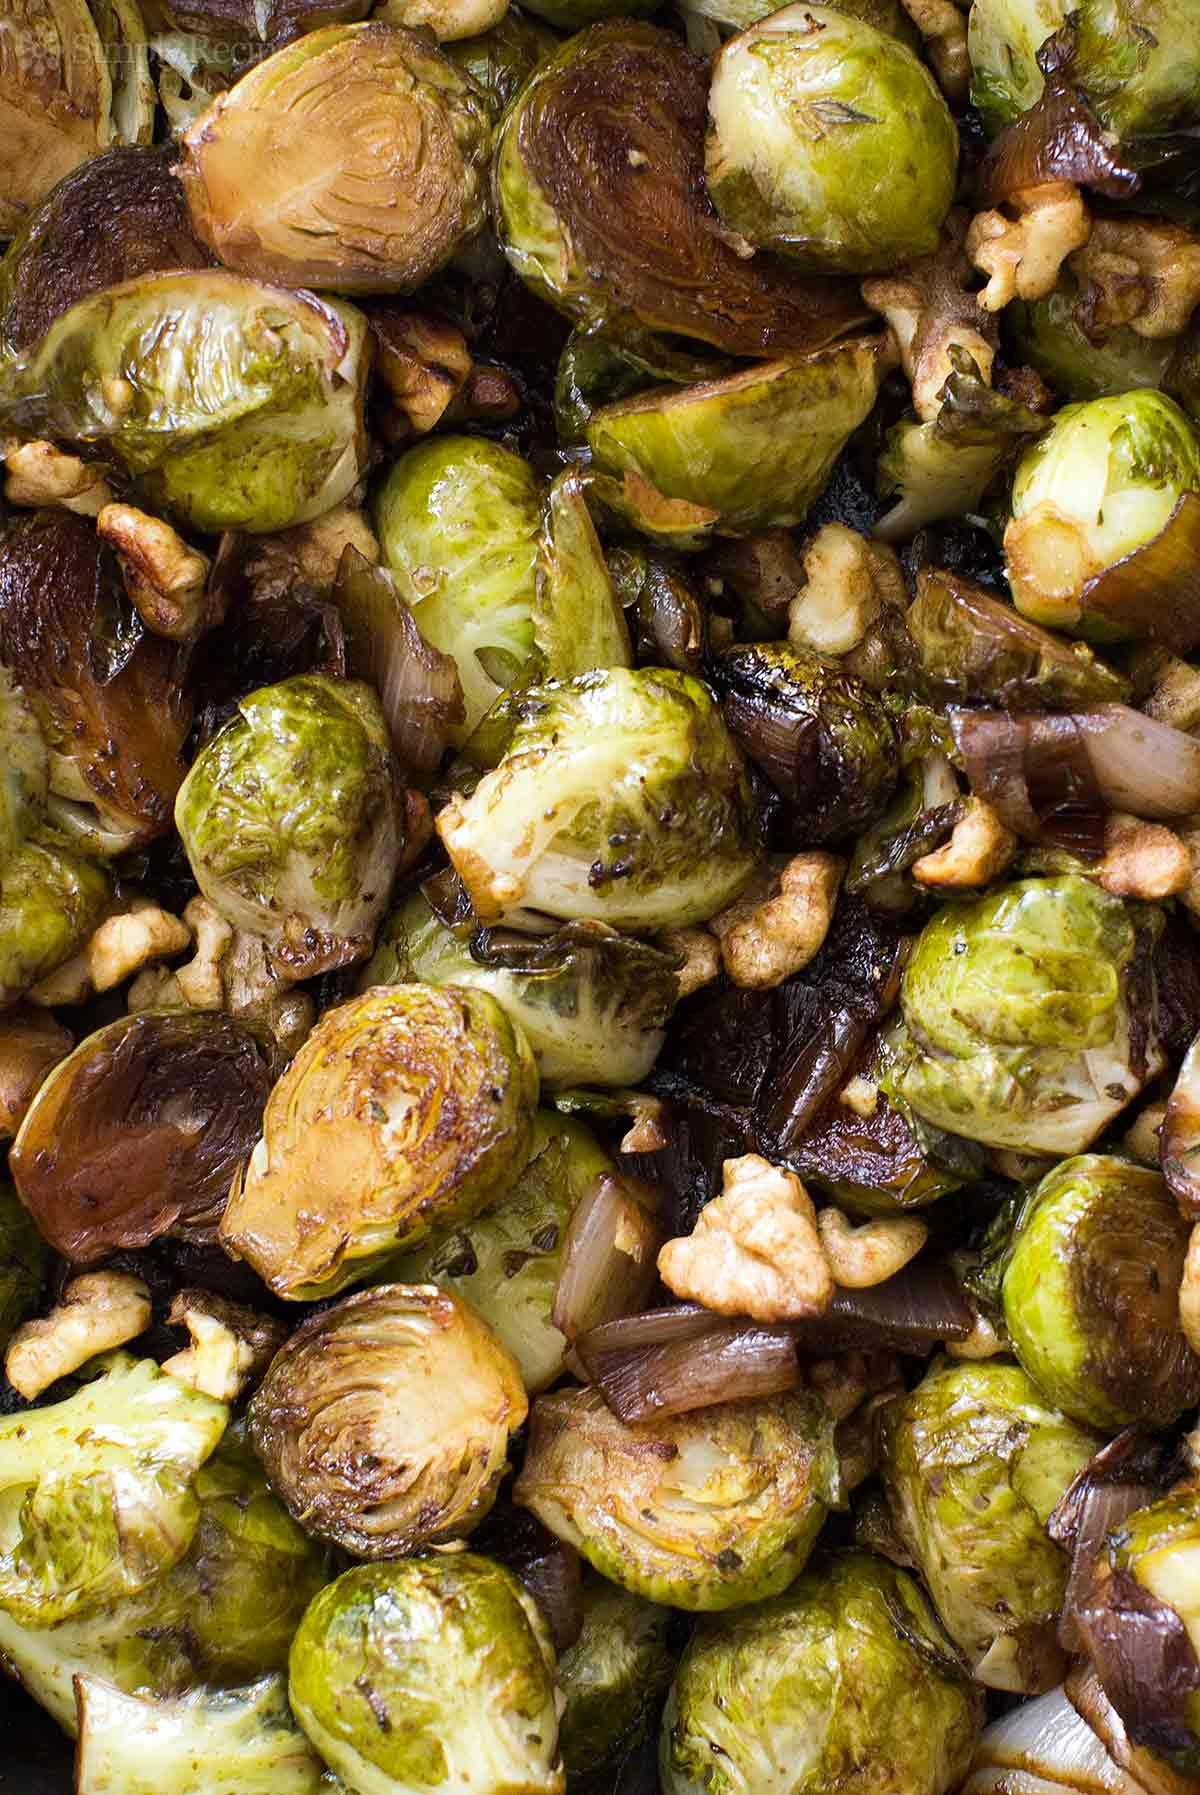 Balsamic roasted brussels sprouts and shallots recipe